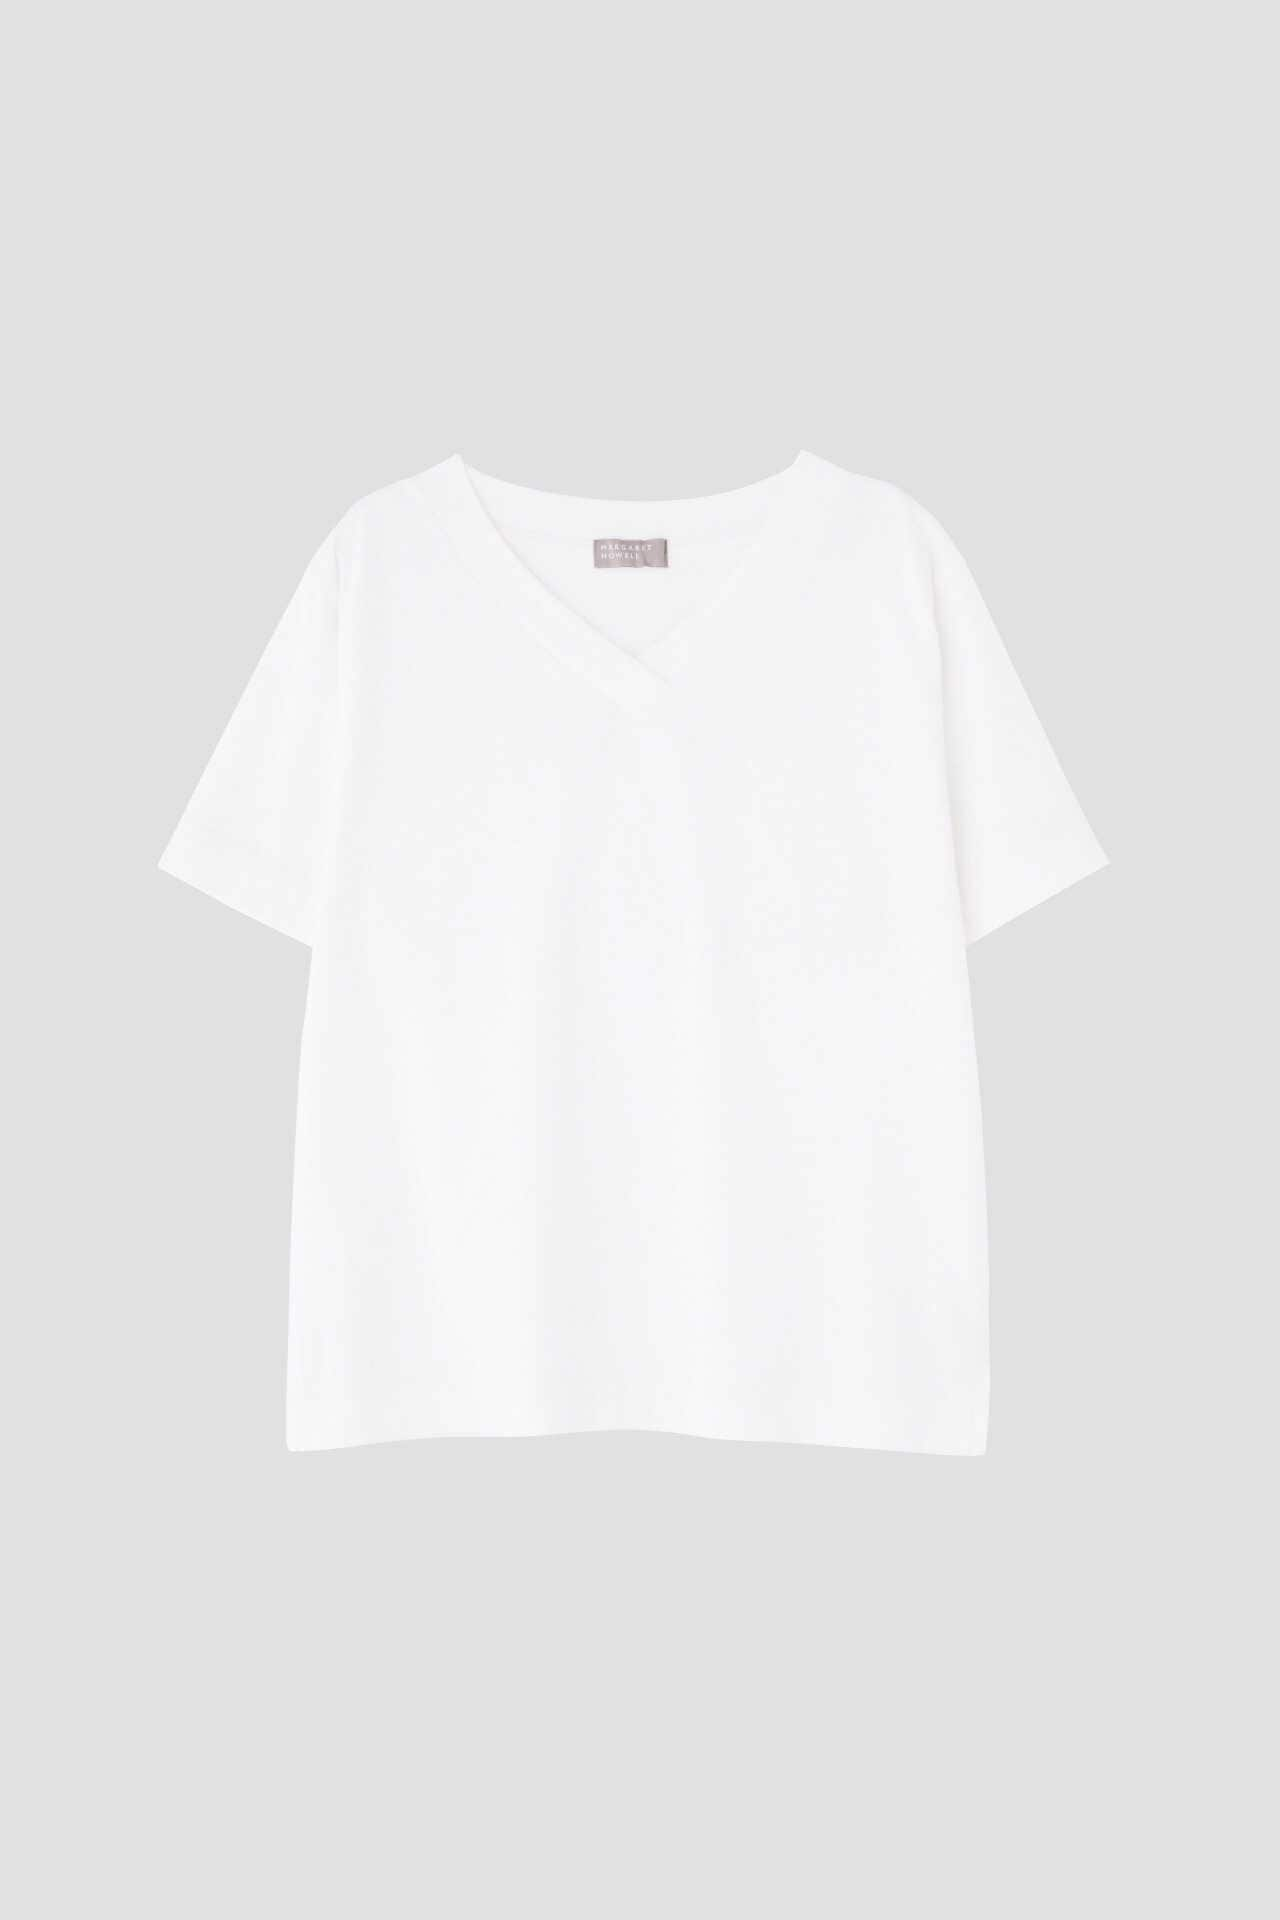 COTTON V NECK T SHIRT7